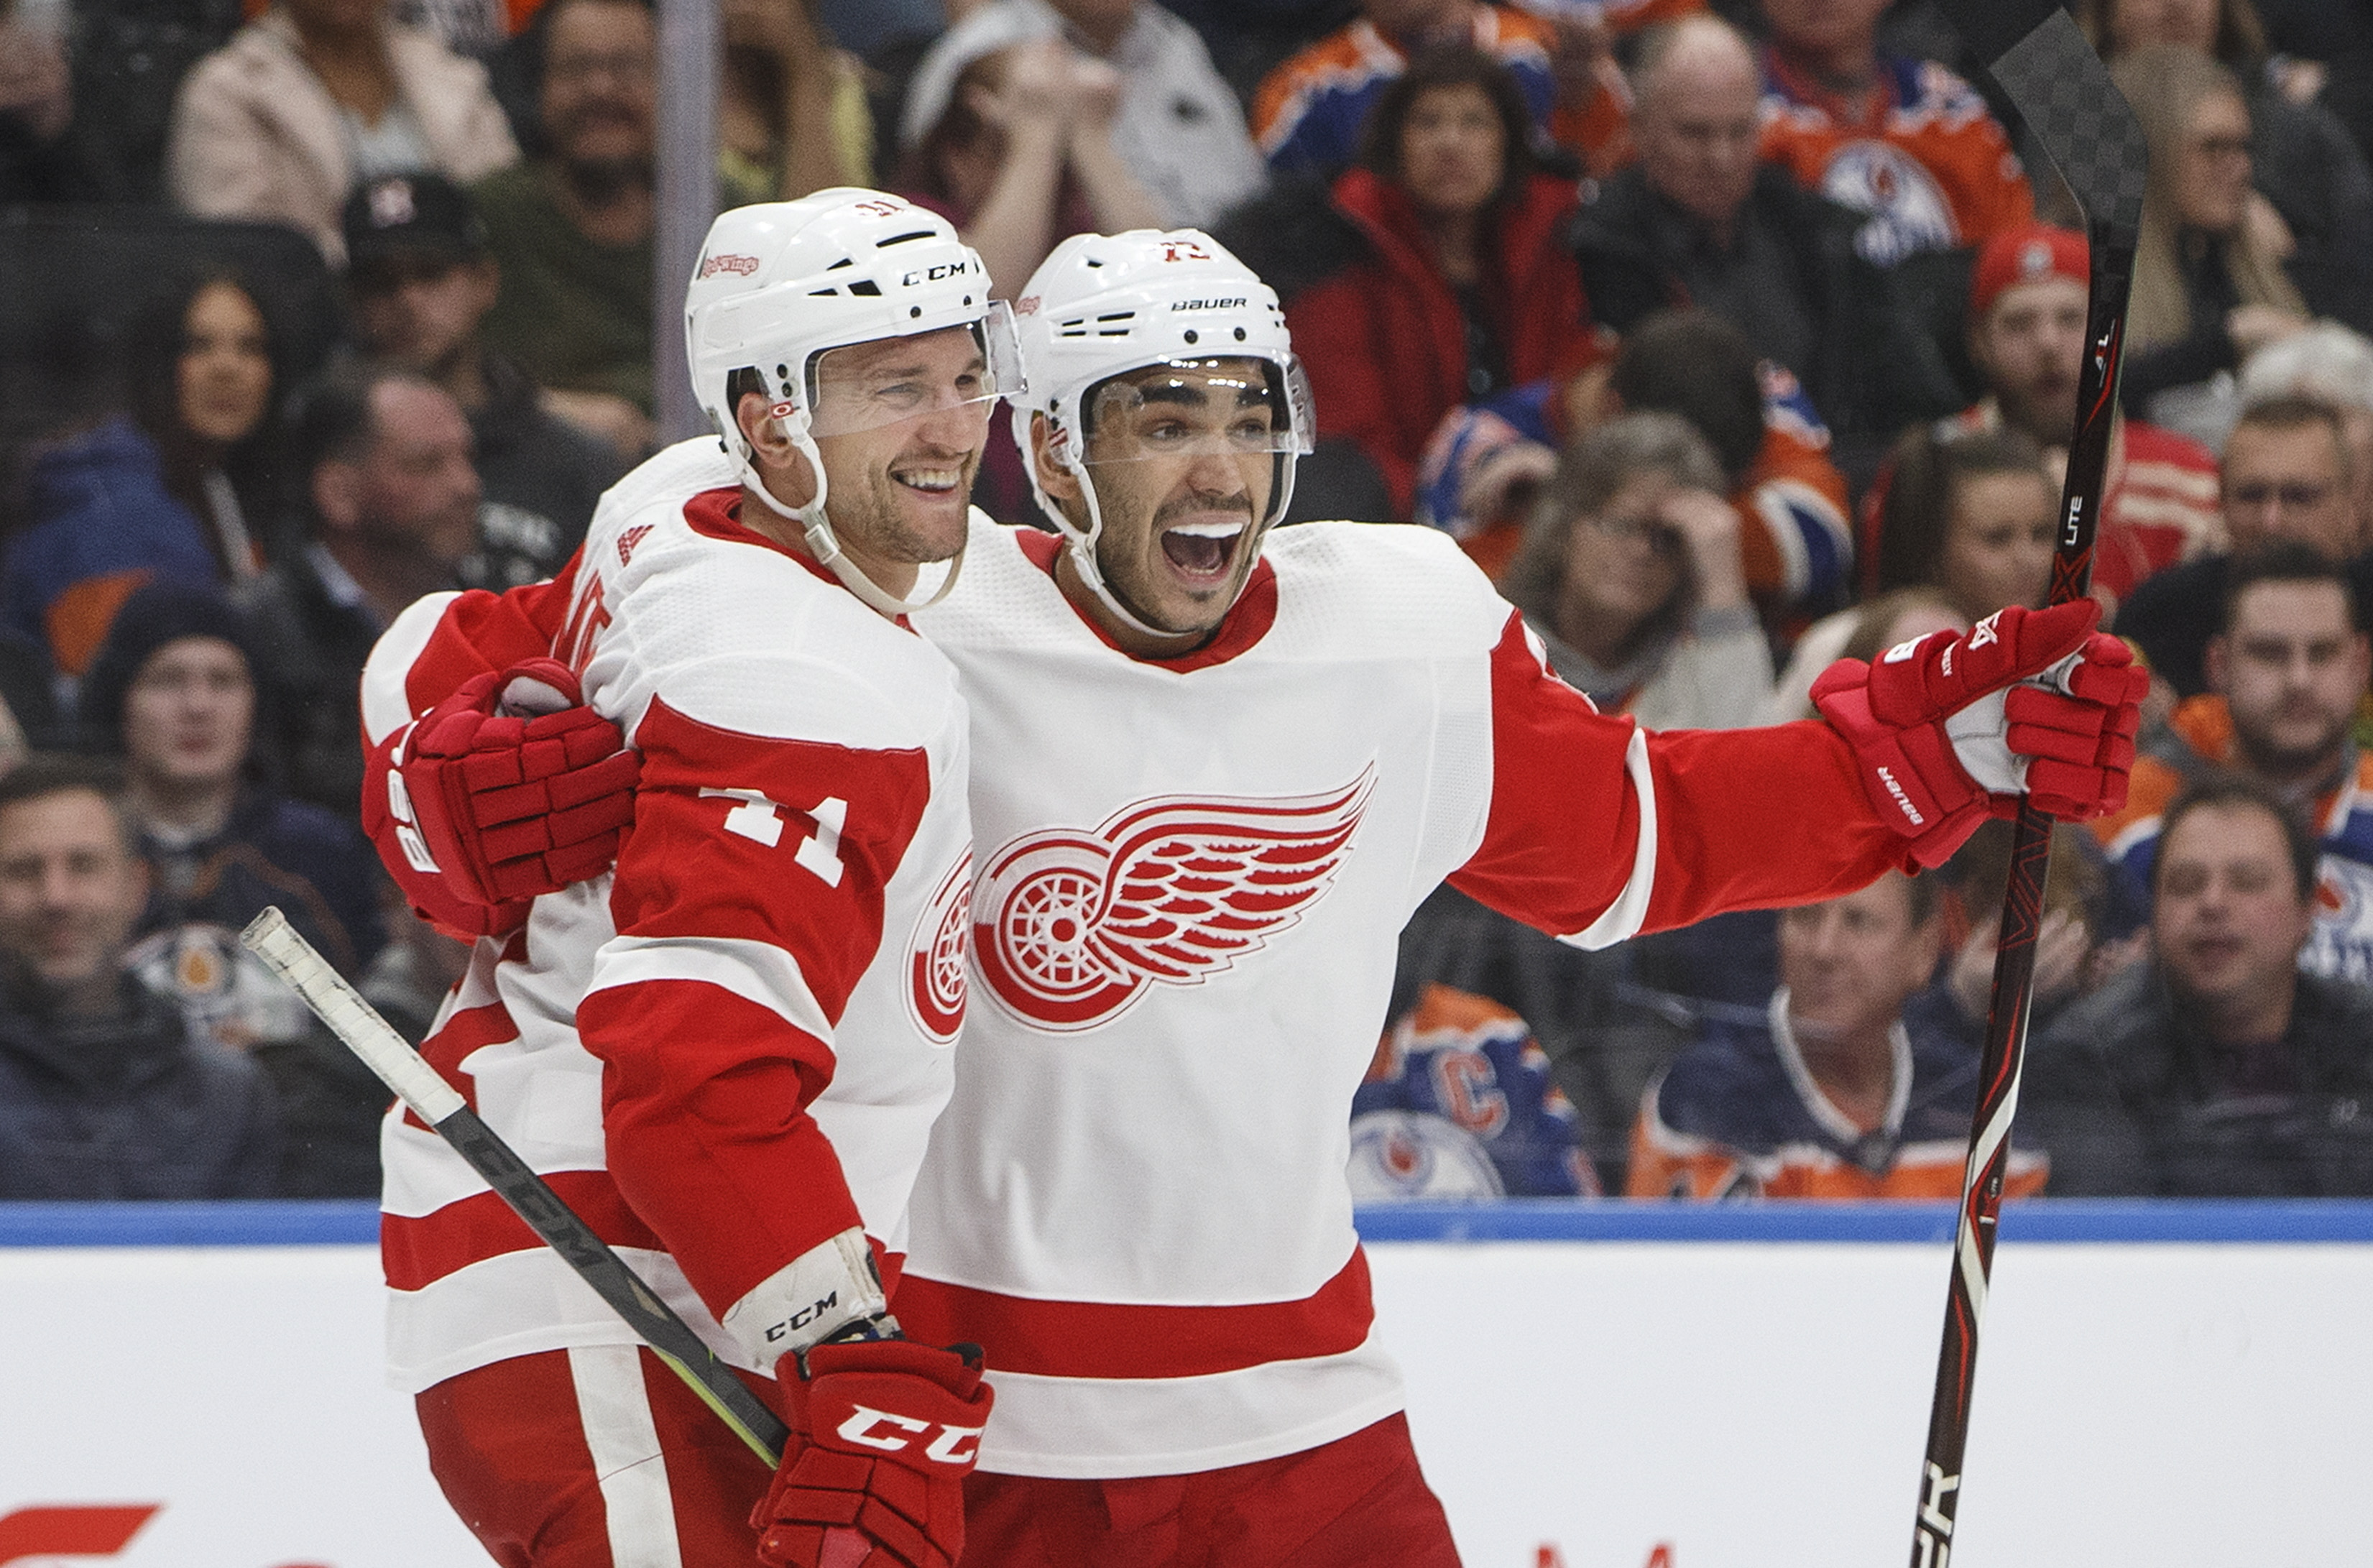 Glendening scores twice, Red Wings top Oilers 3-2